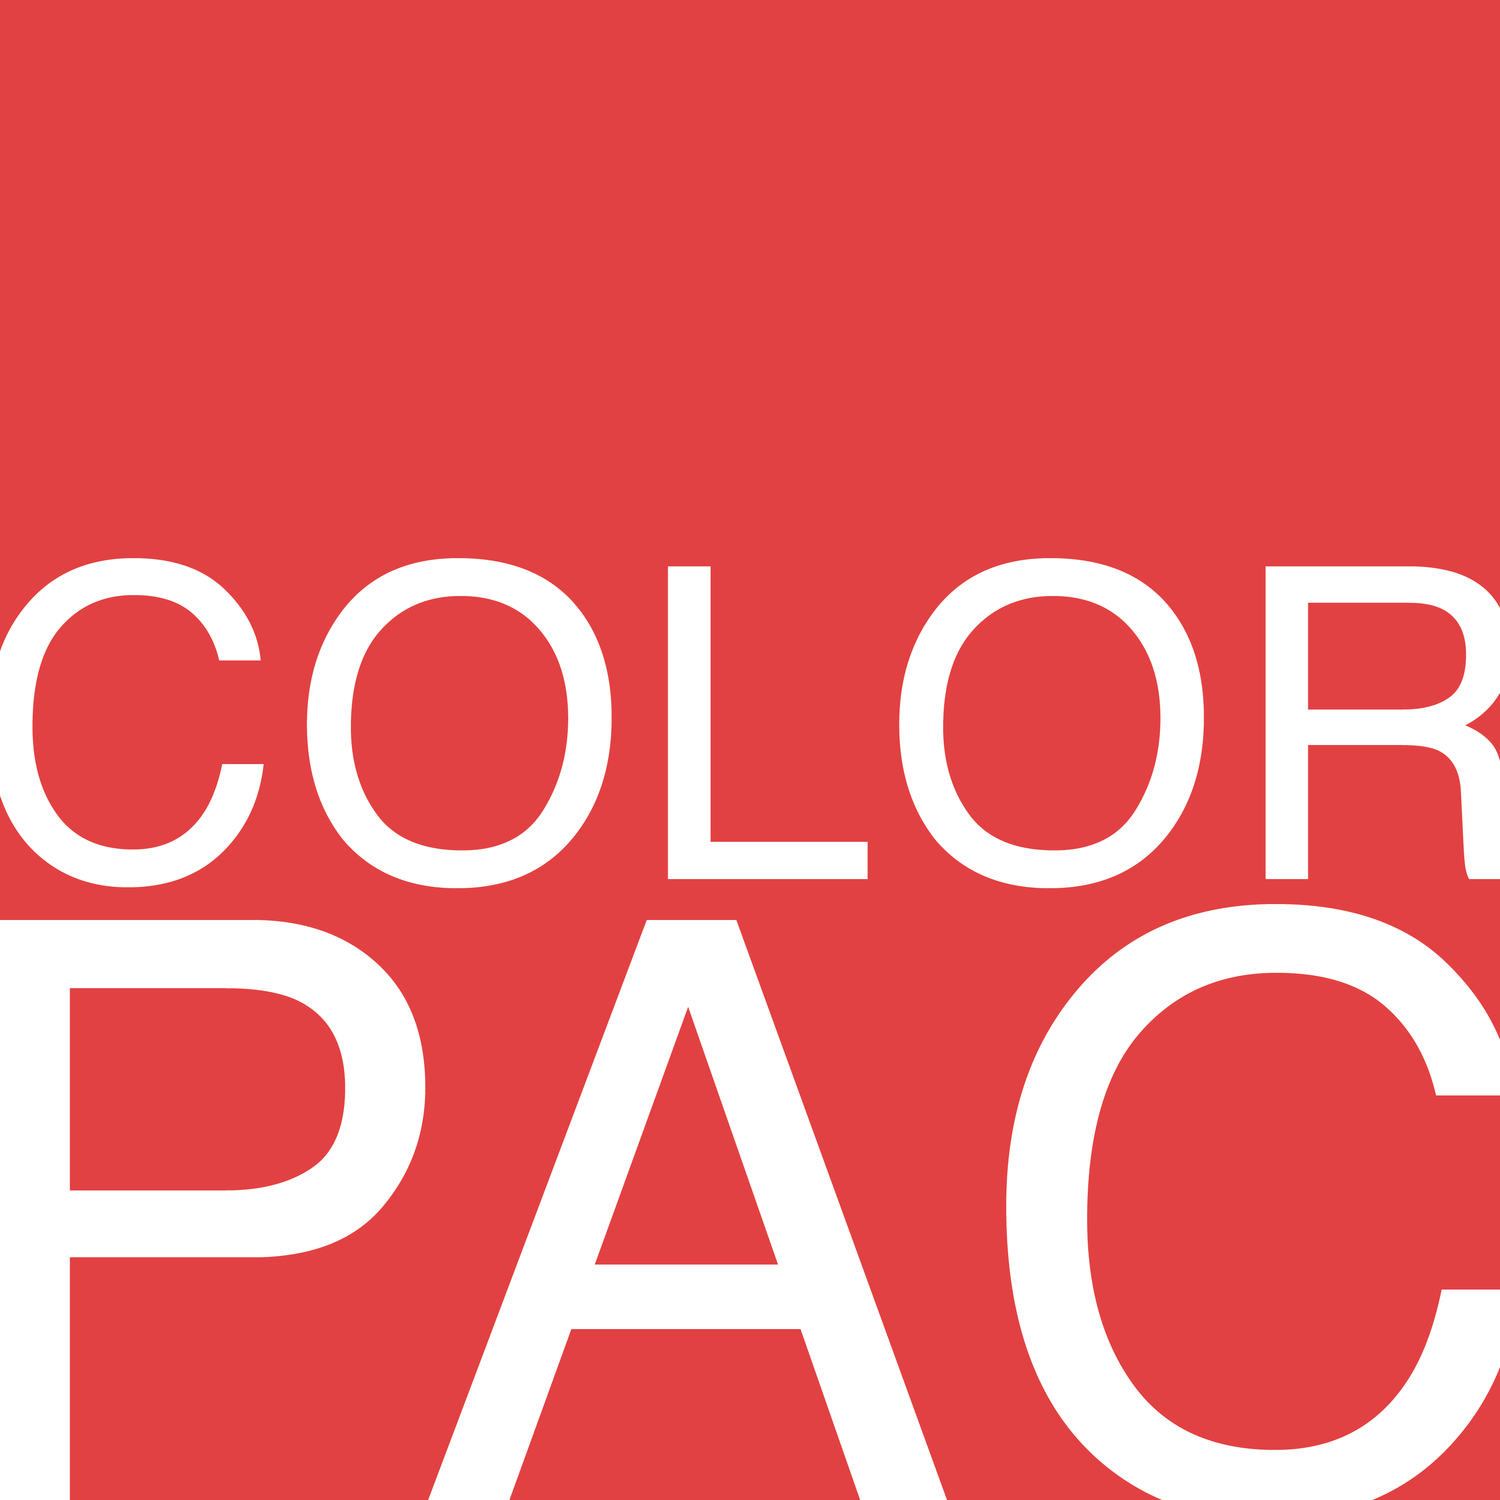 Color PAC